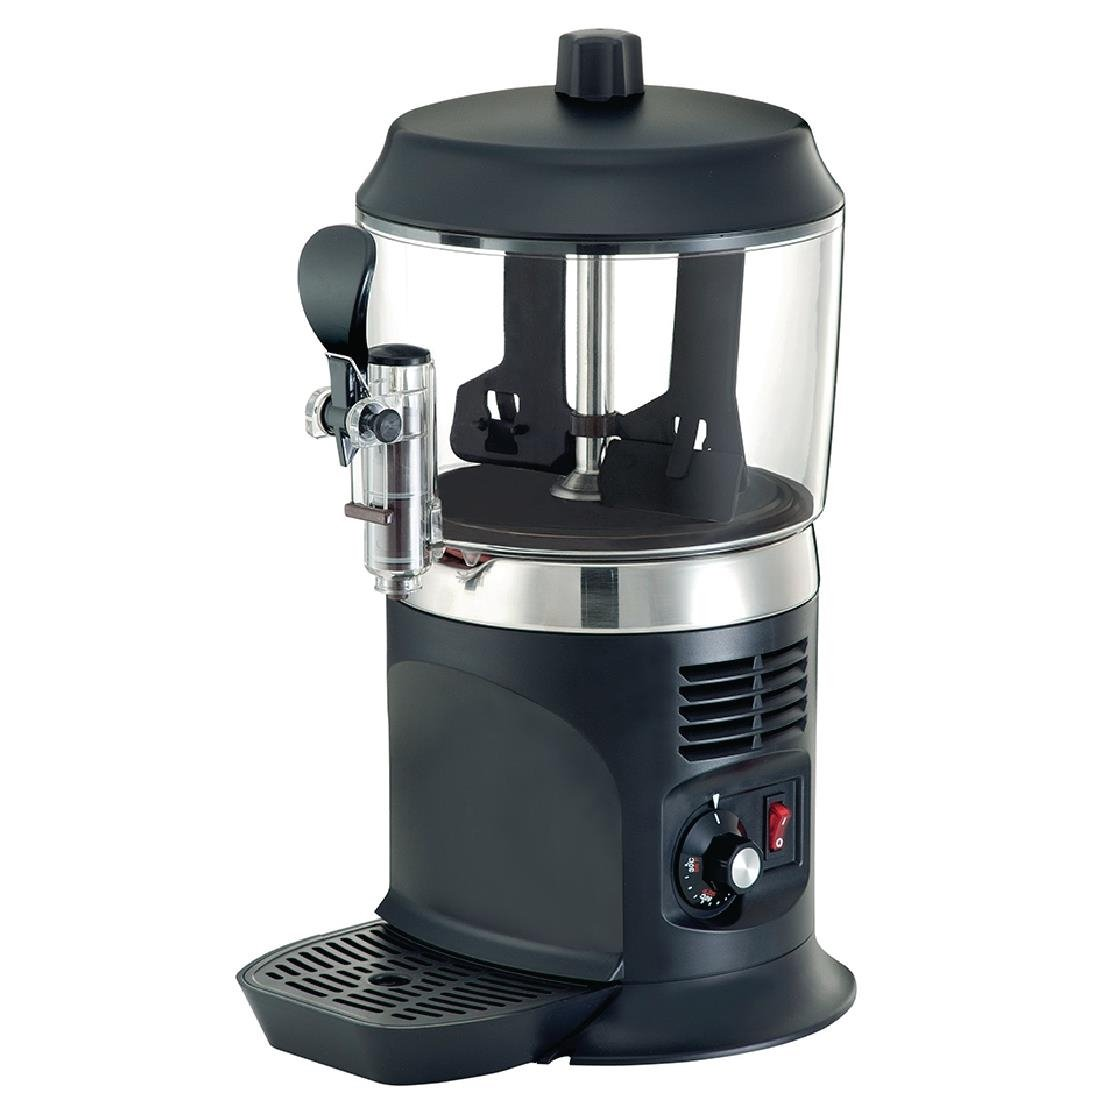 JM Posner Black Hot Chocolate & Sauce Maker